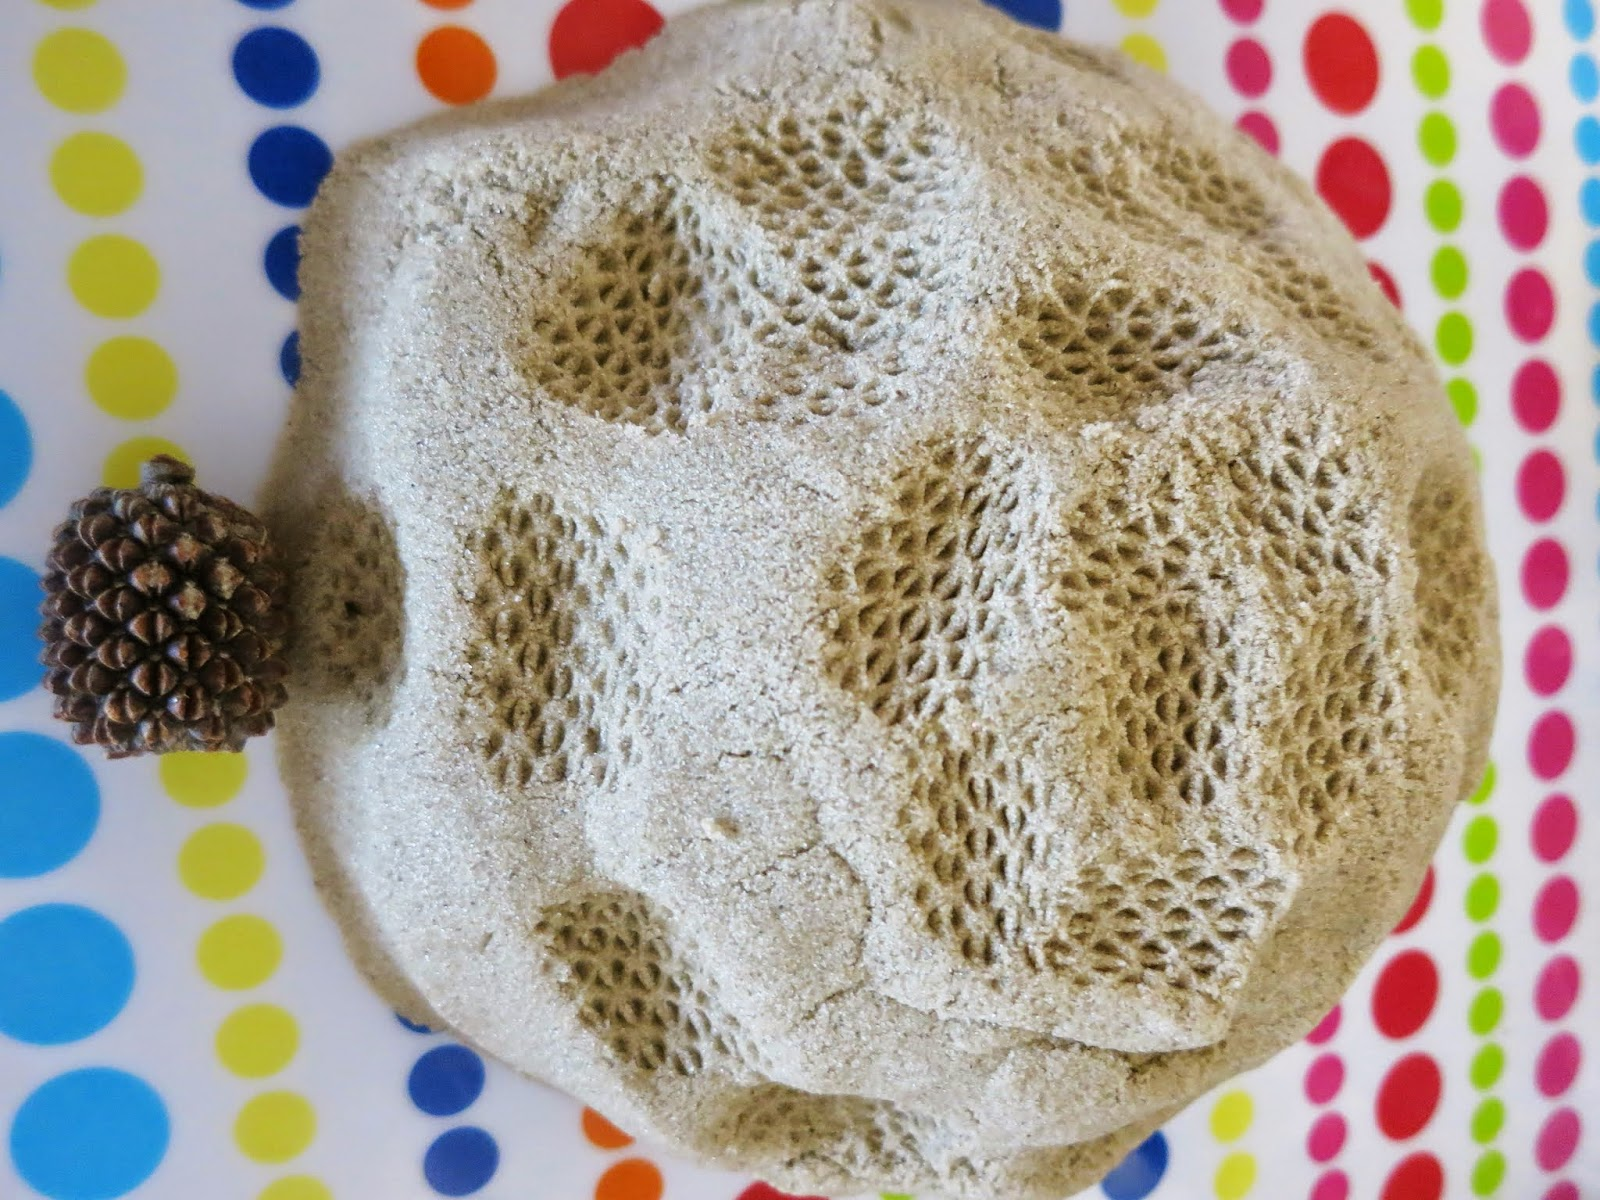 Learn with Play at Home: Play and Learn with Kinetic Sand